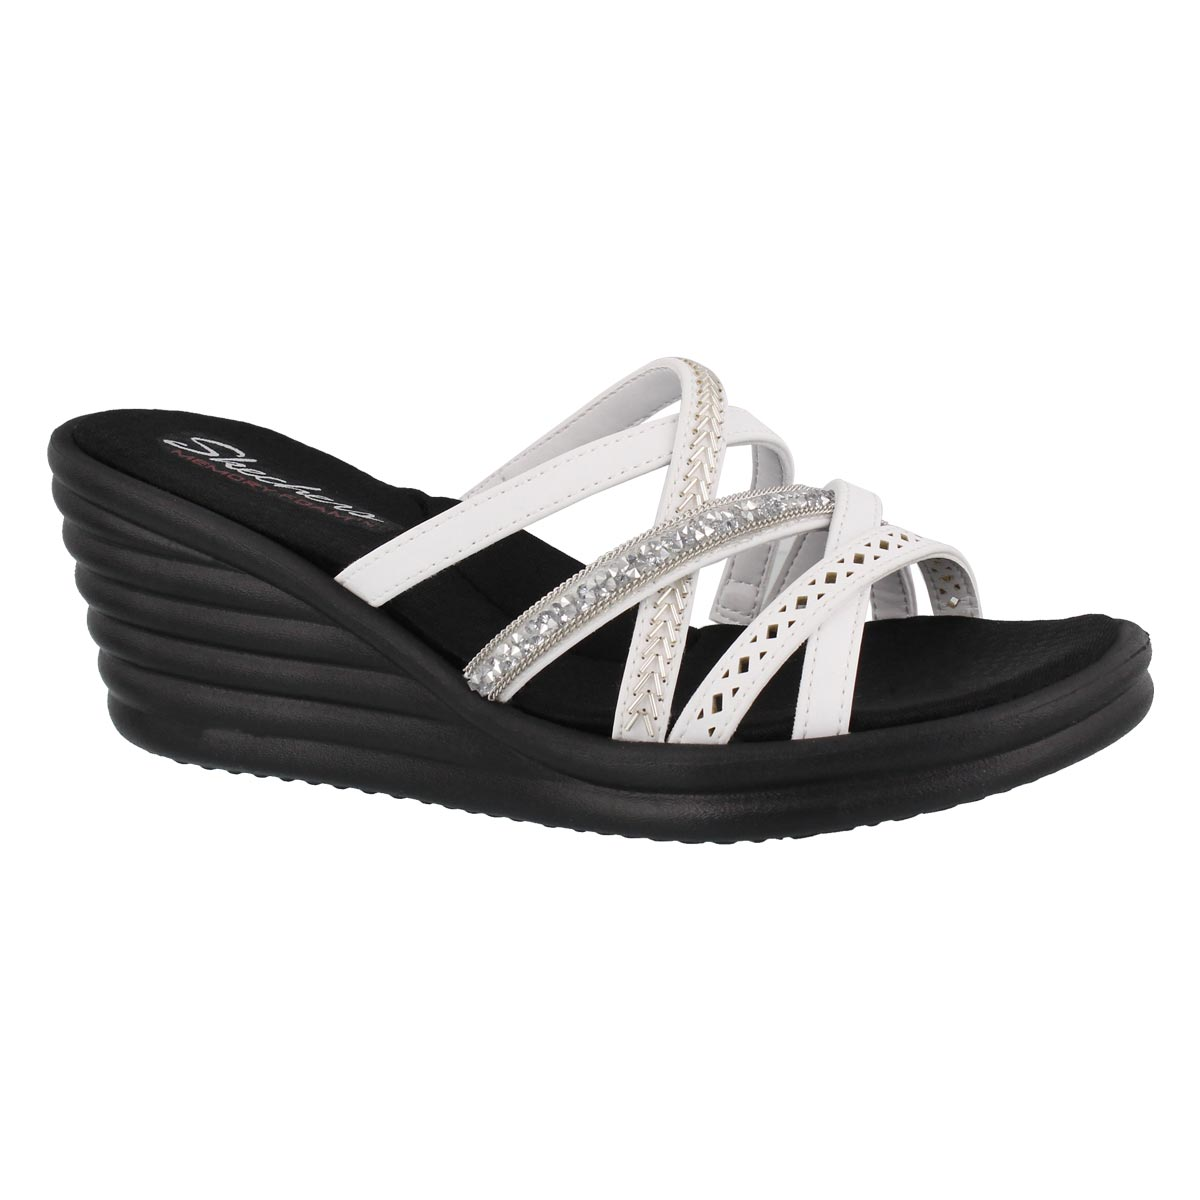 Women's RUMBLERS WAVE white wedge sandals